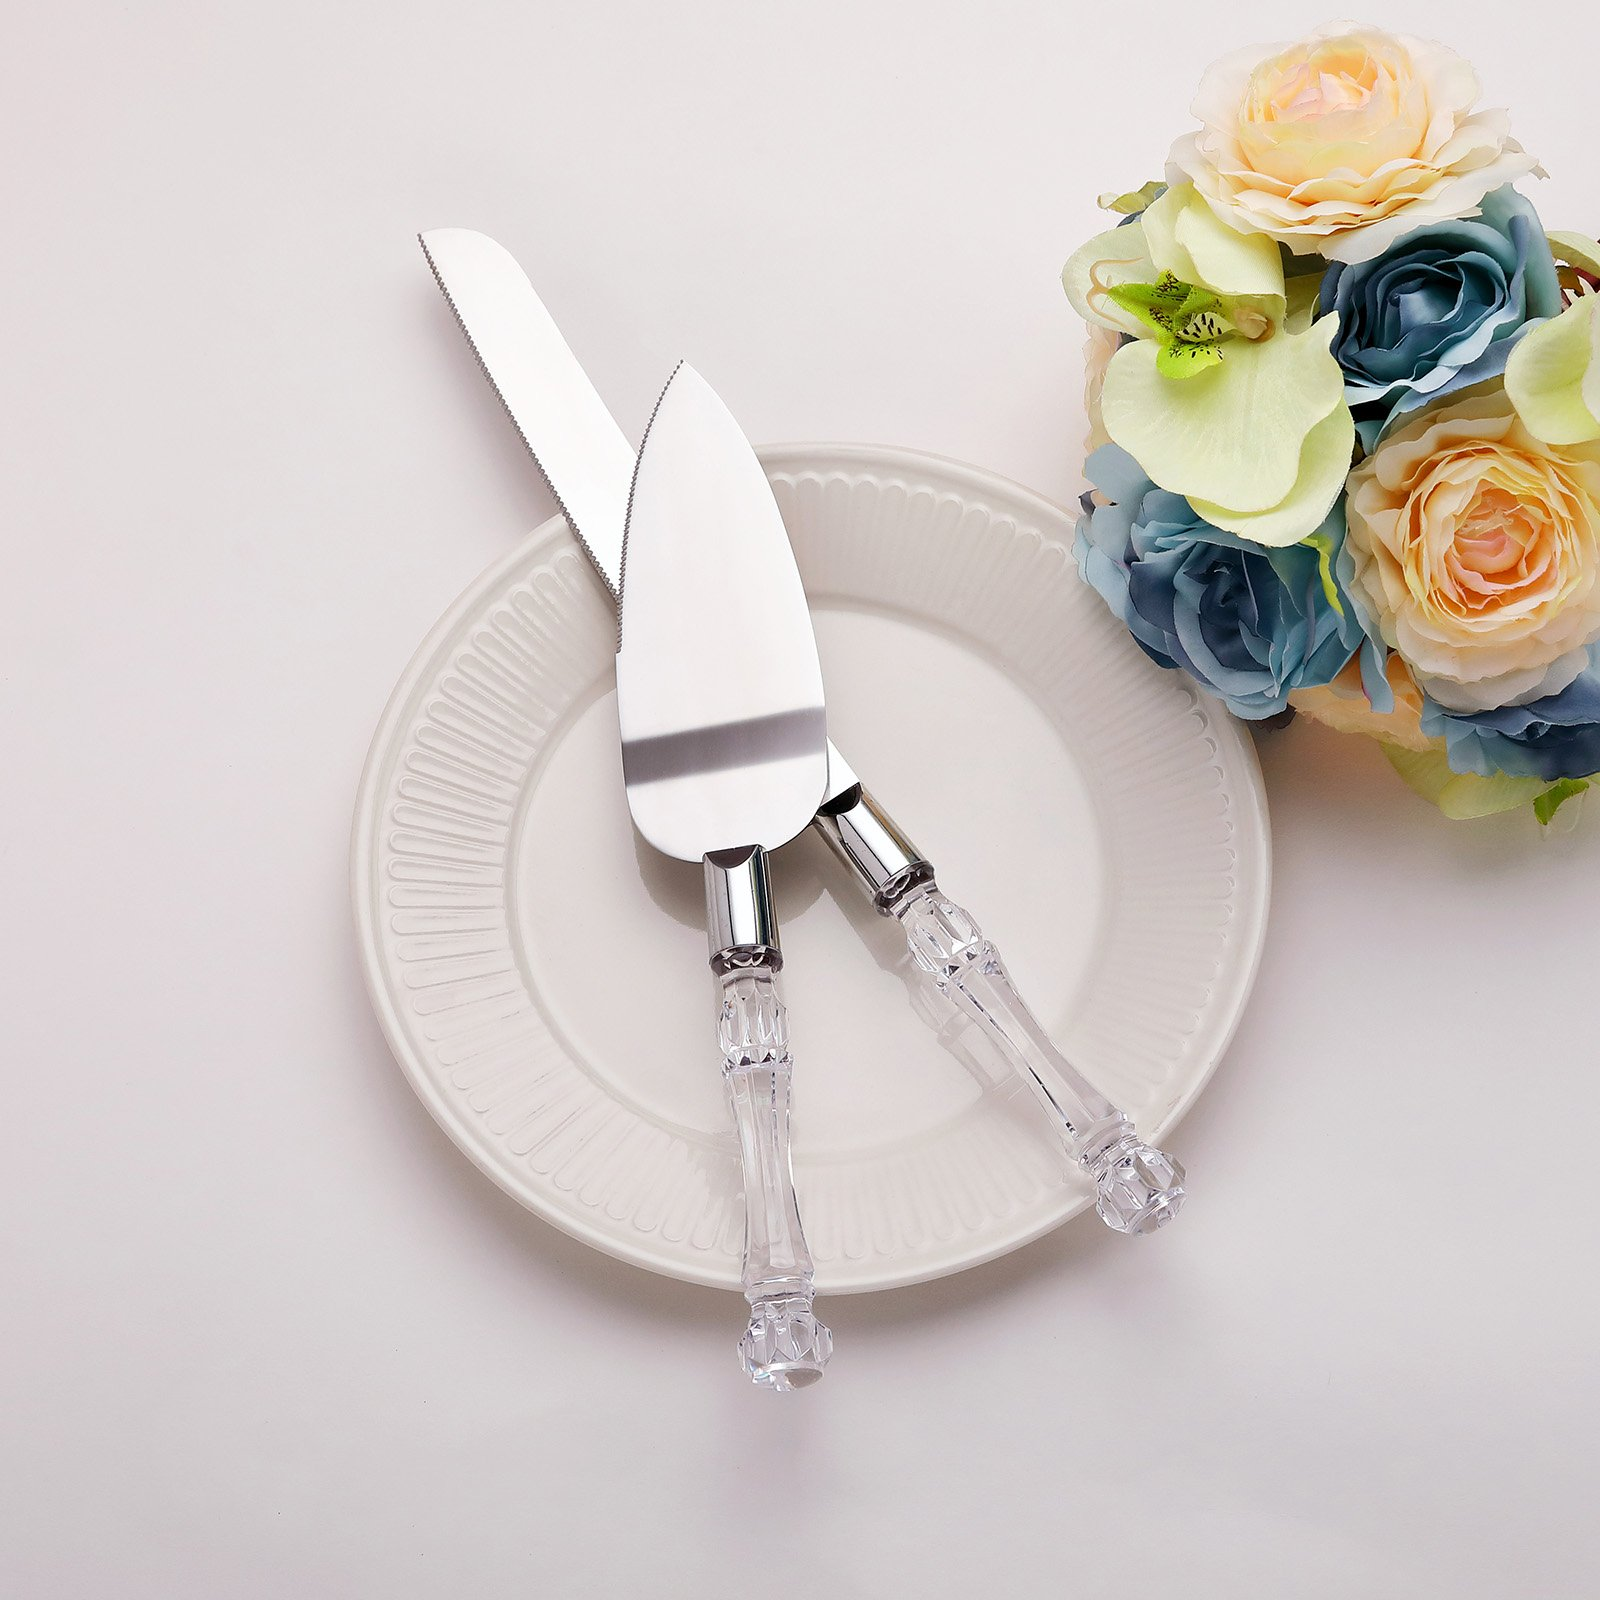 AW Stainless Steel Wedding Cake Knife And Server Set